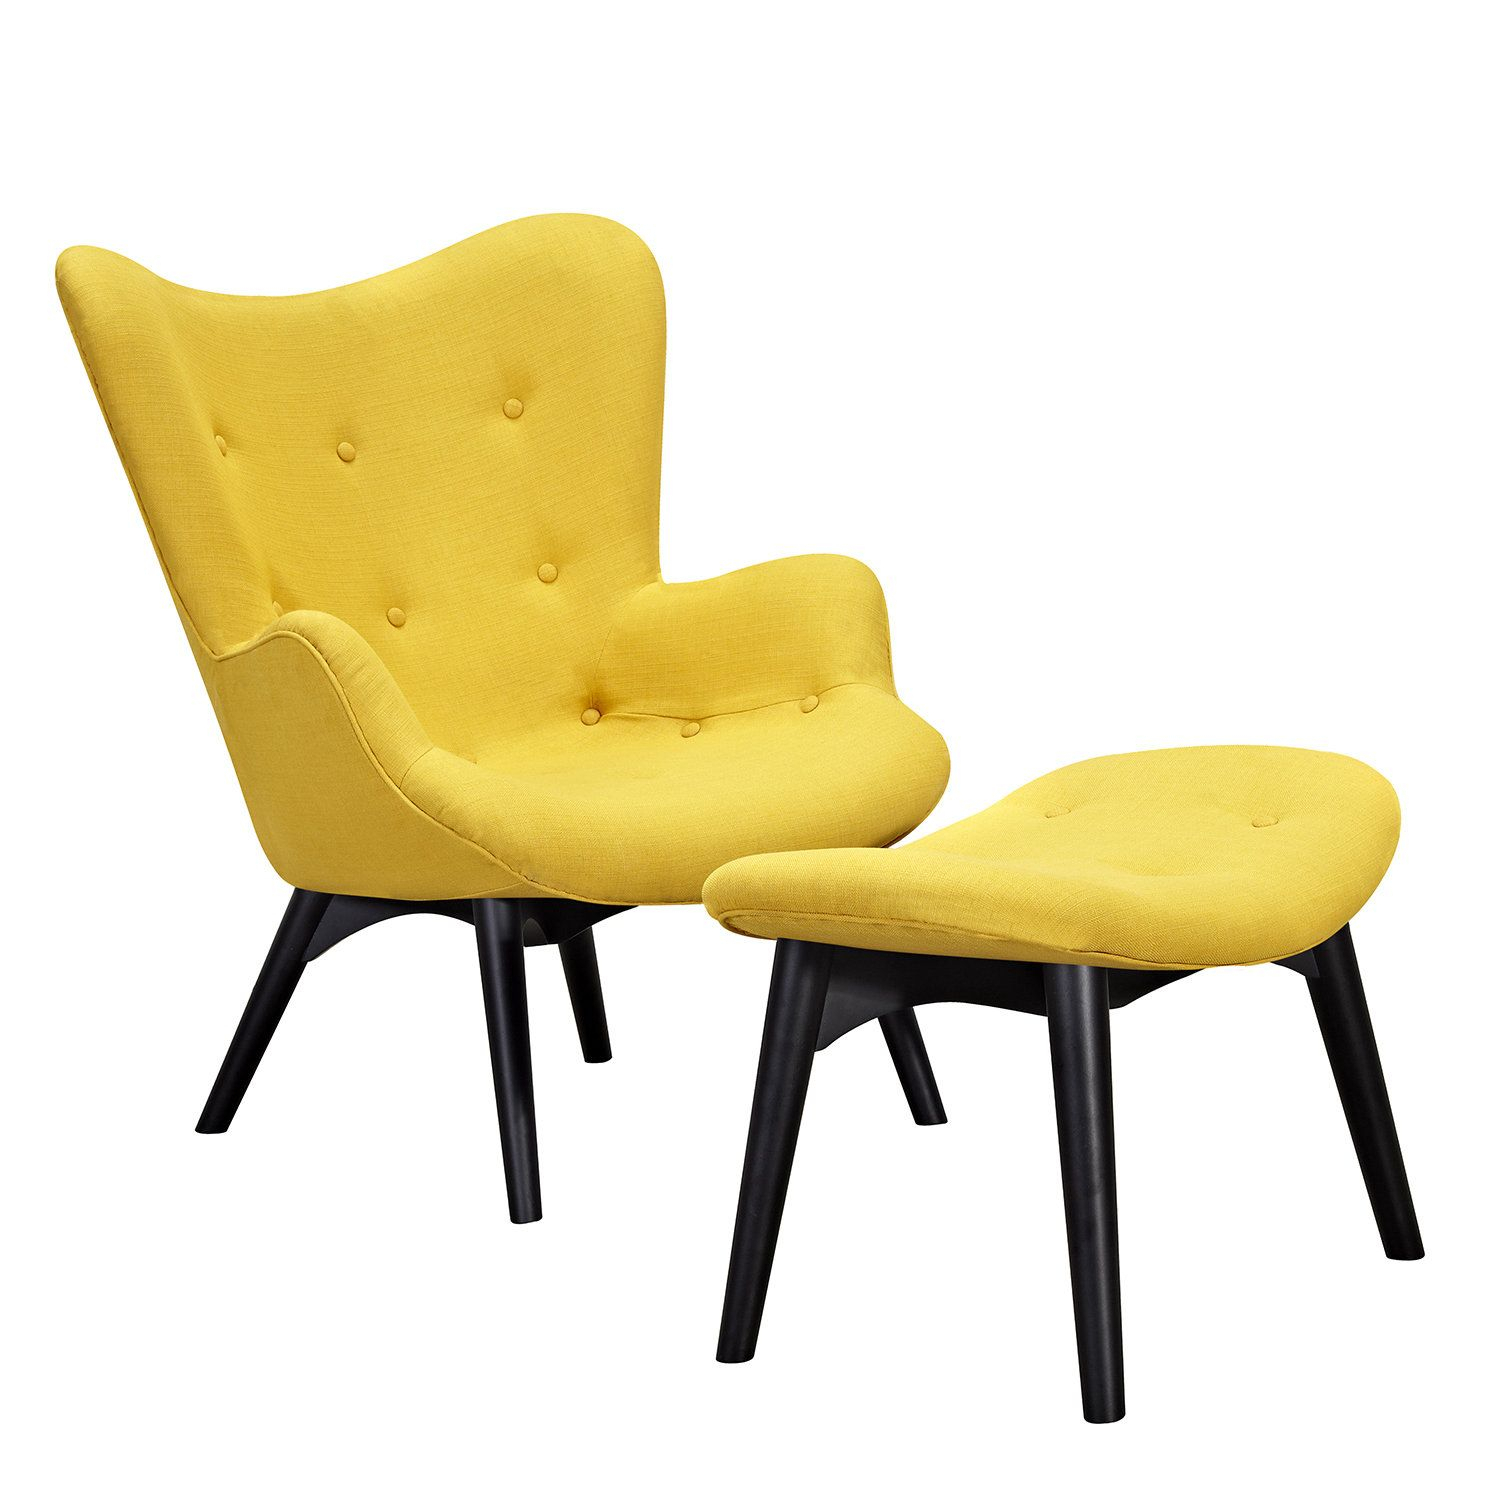 Aiden Lounge Chair And Ottoman | Products | Pinterest | Ottomans And Intended For Aidan Ii Swivel Accent Chairs (View 15 of 20)